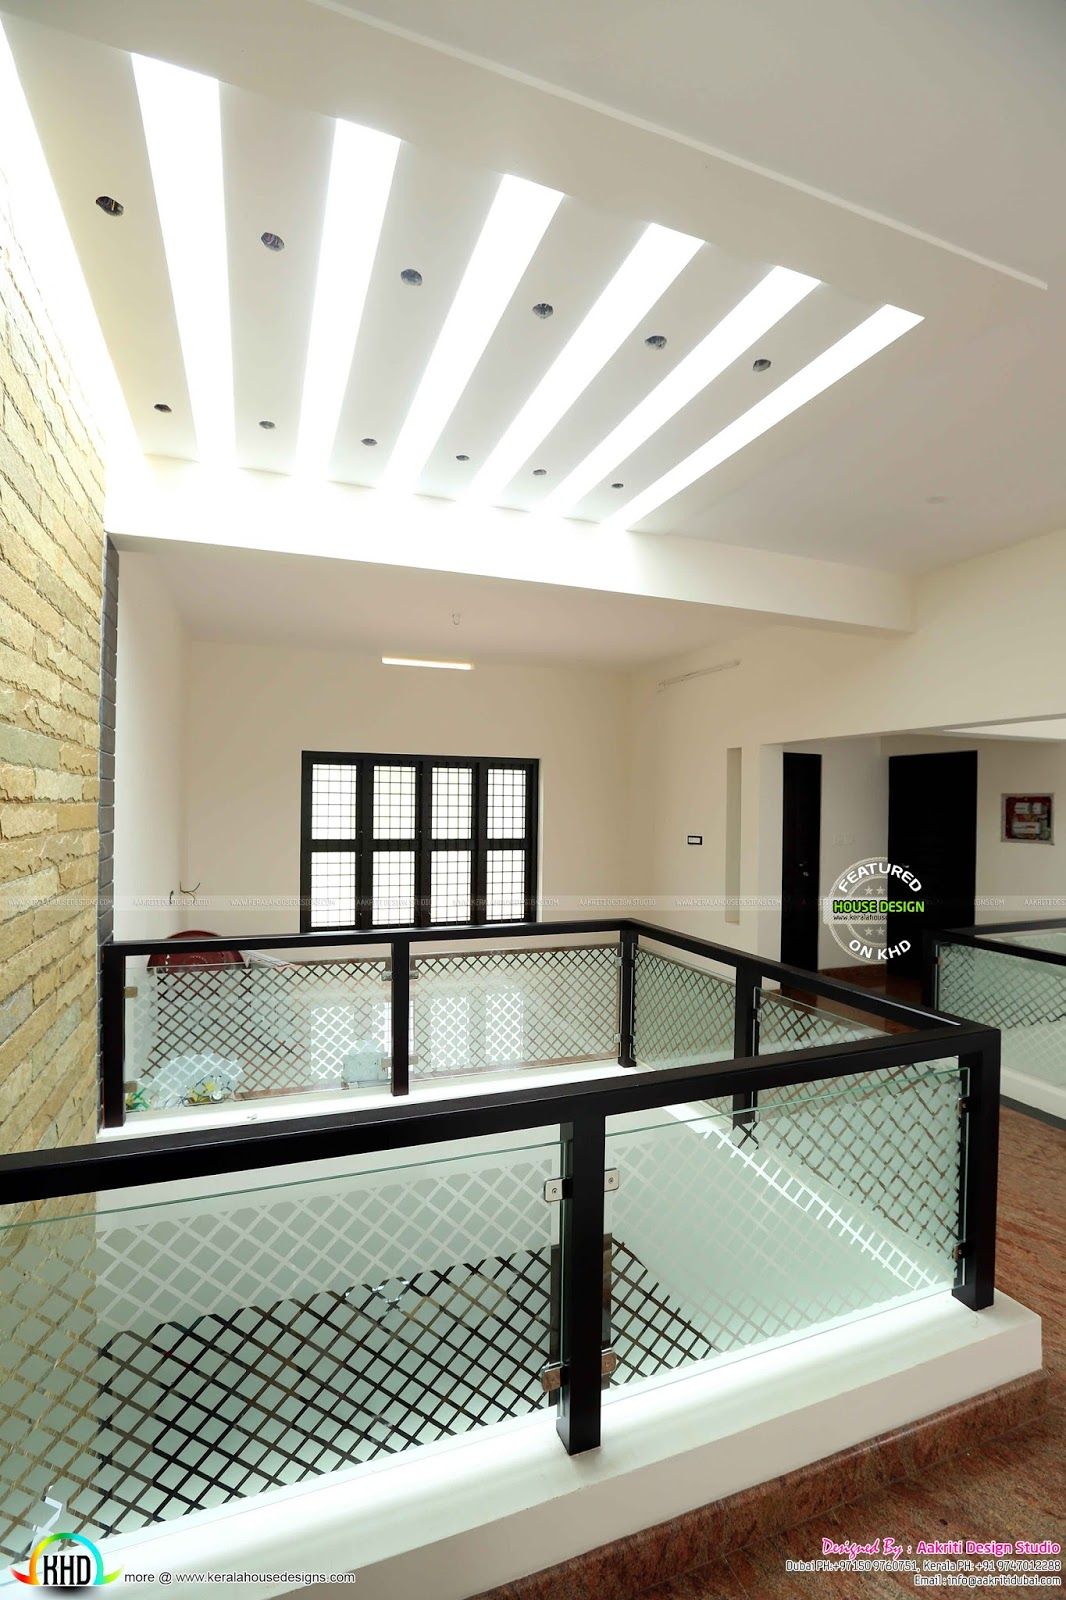 Finished Interior Designs In Kerala: Finished Villa At Kolencheri, Ernakulam